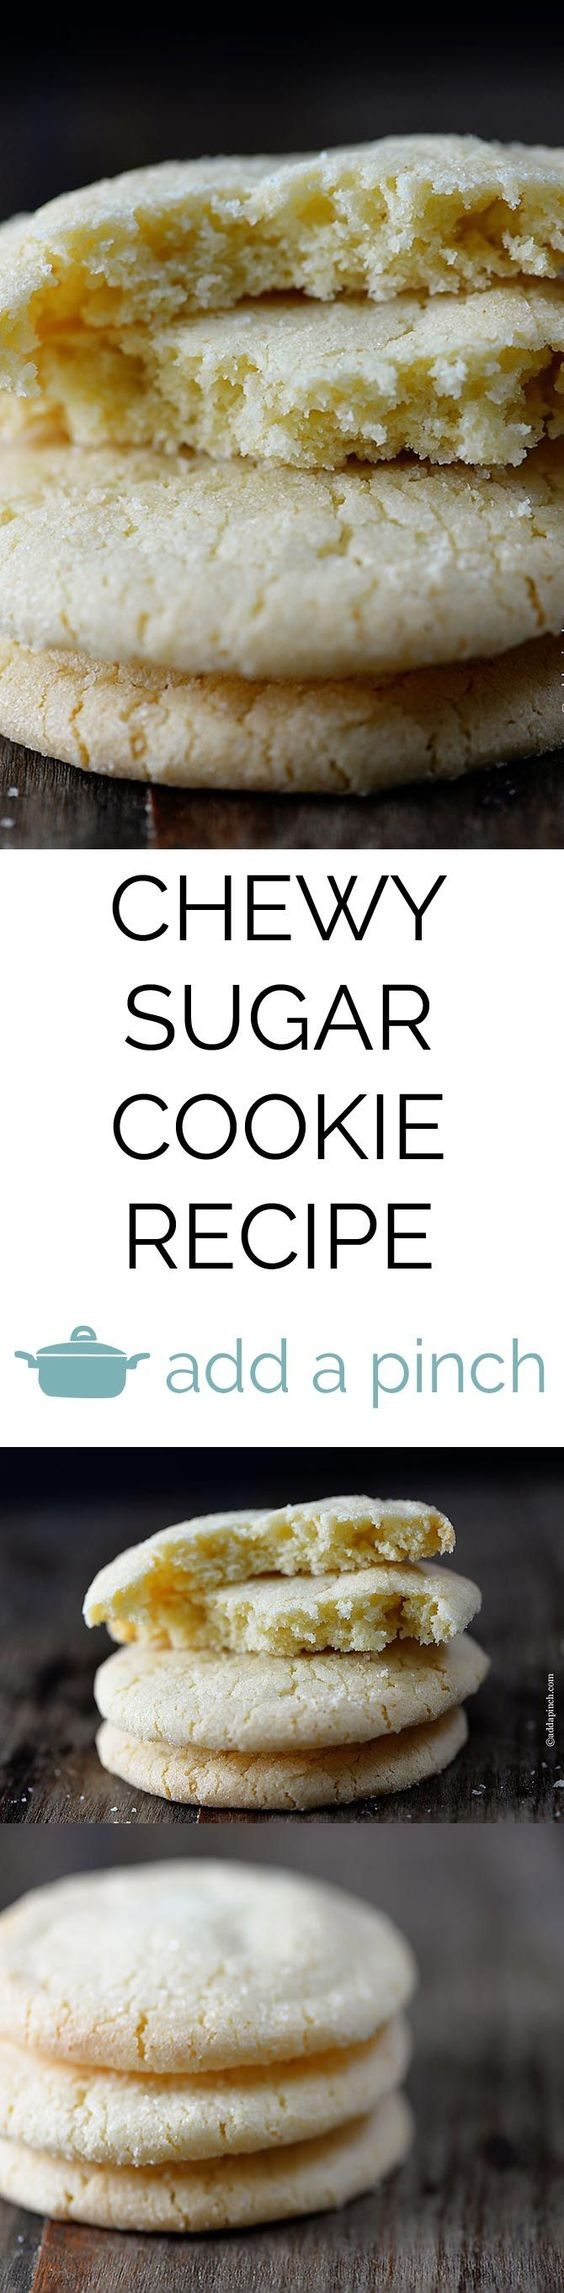 how to make quick and easy sugar cookies